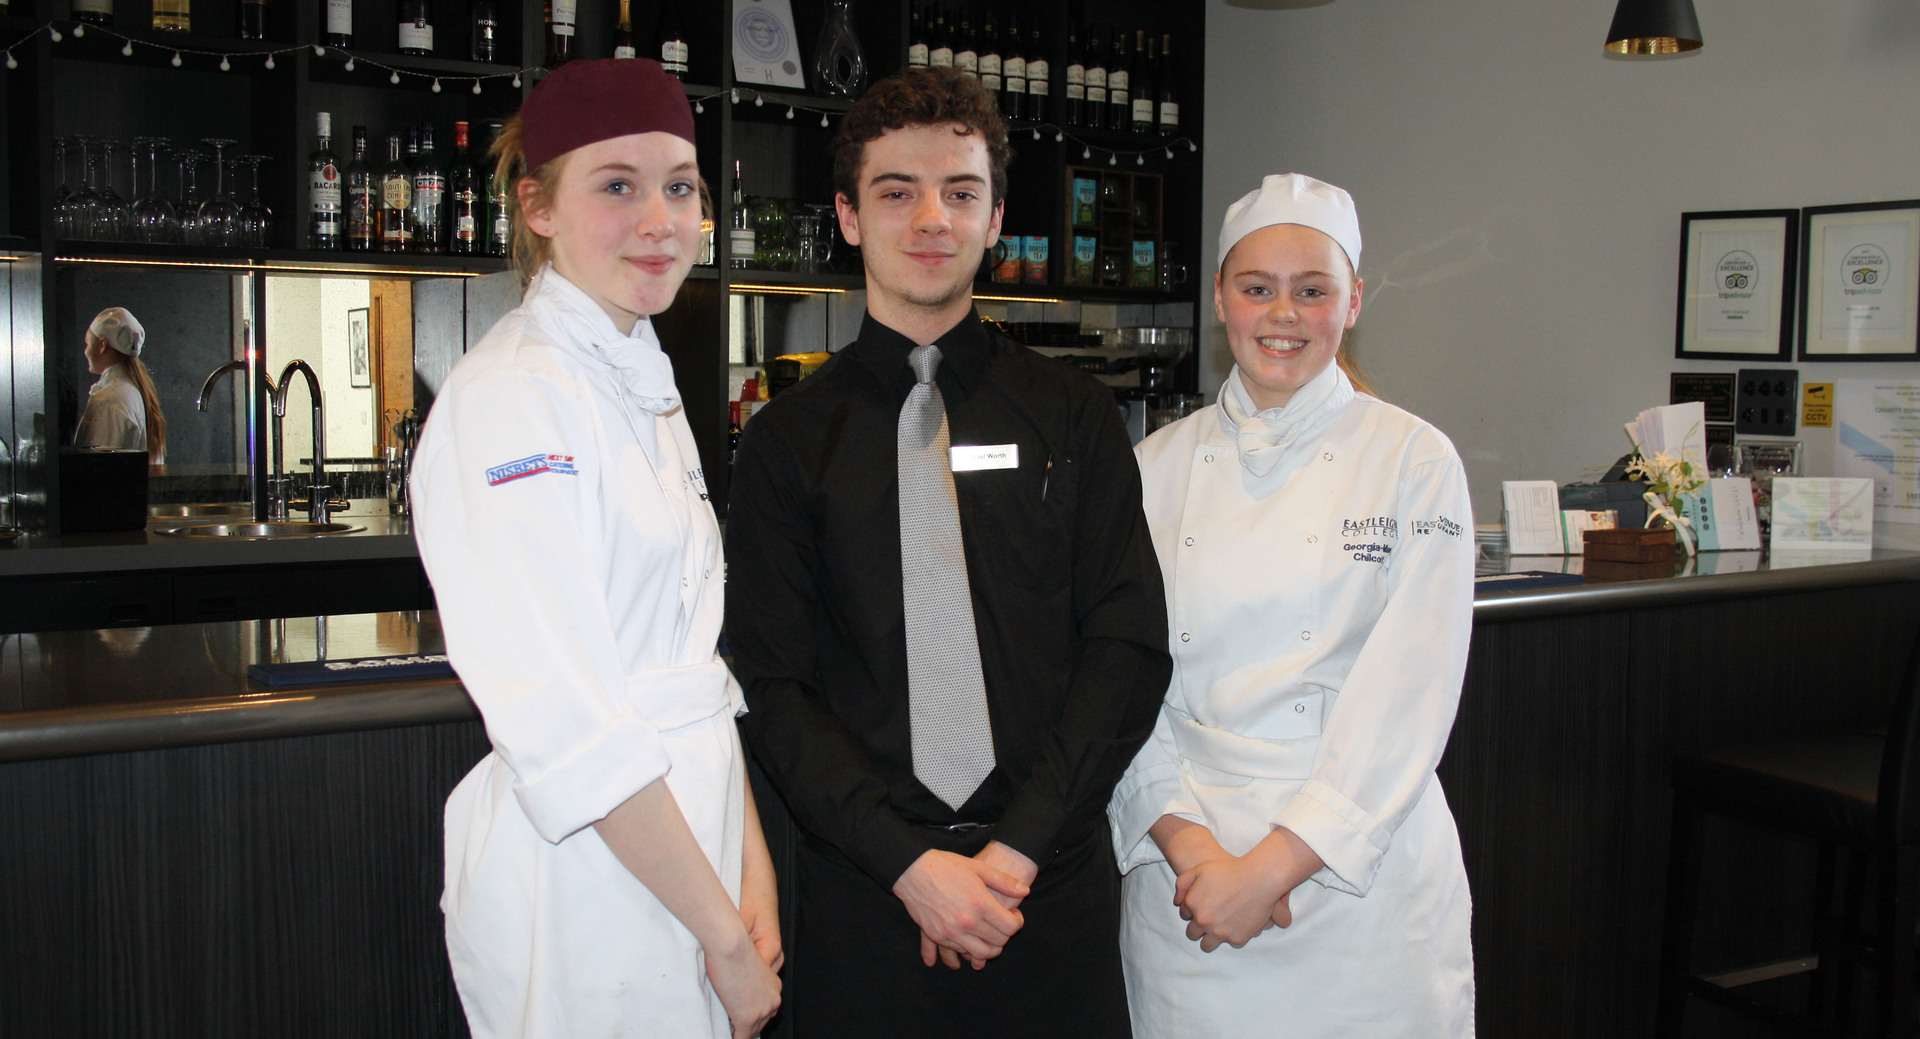 Students in the running for Young Restaurant Team of the Year